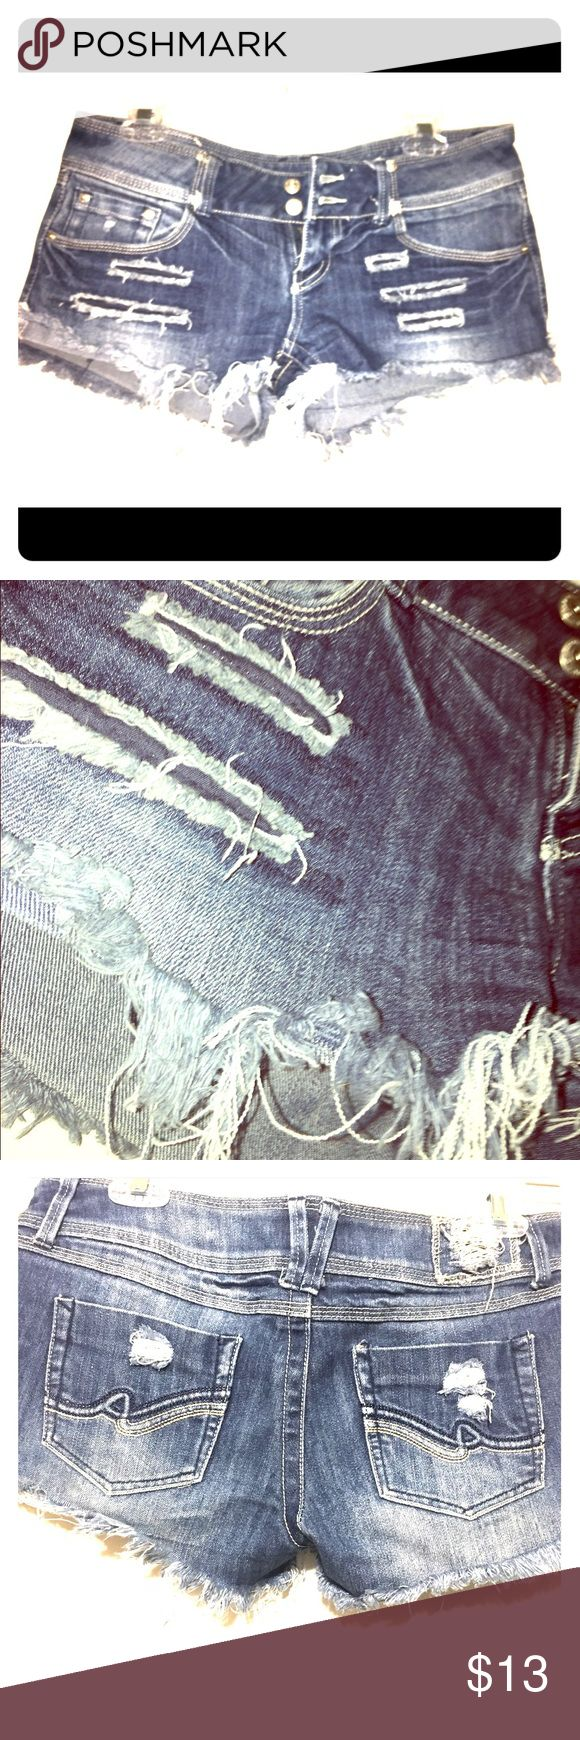 😍 FRINGED DENIM SHORTS. HOT SUMMER DEAL😍 I absolutely love these and they will truly be missed! The denim shorts are gently used, and look amazing on! Don't forget to check out my bundle deal & please make an offer. 👑 Blue Asphalt Shorts Jean Shorts